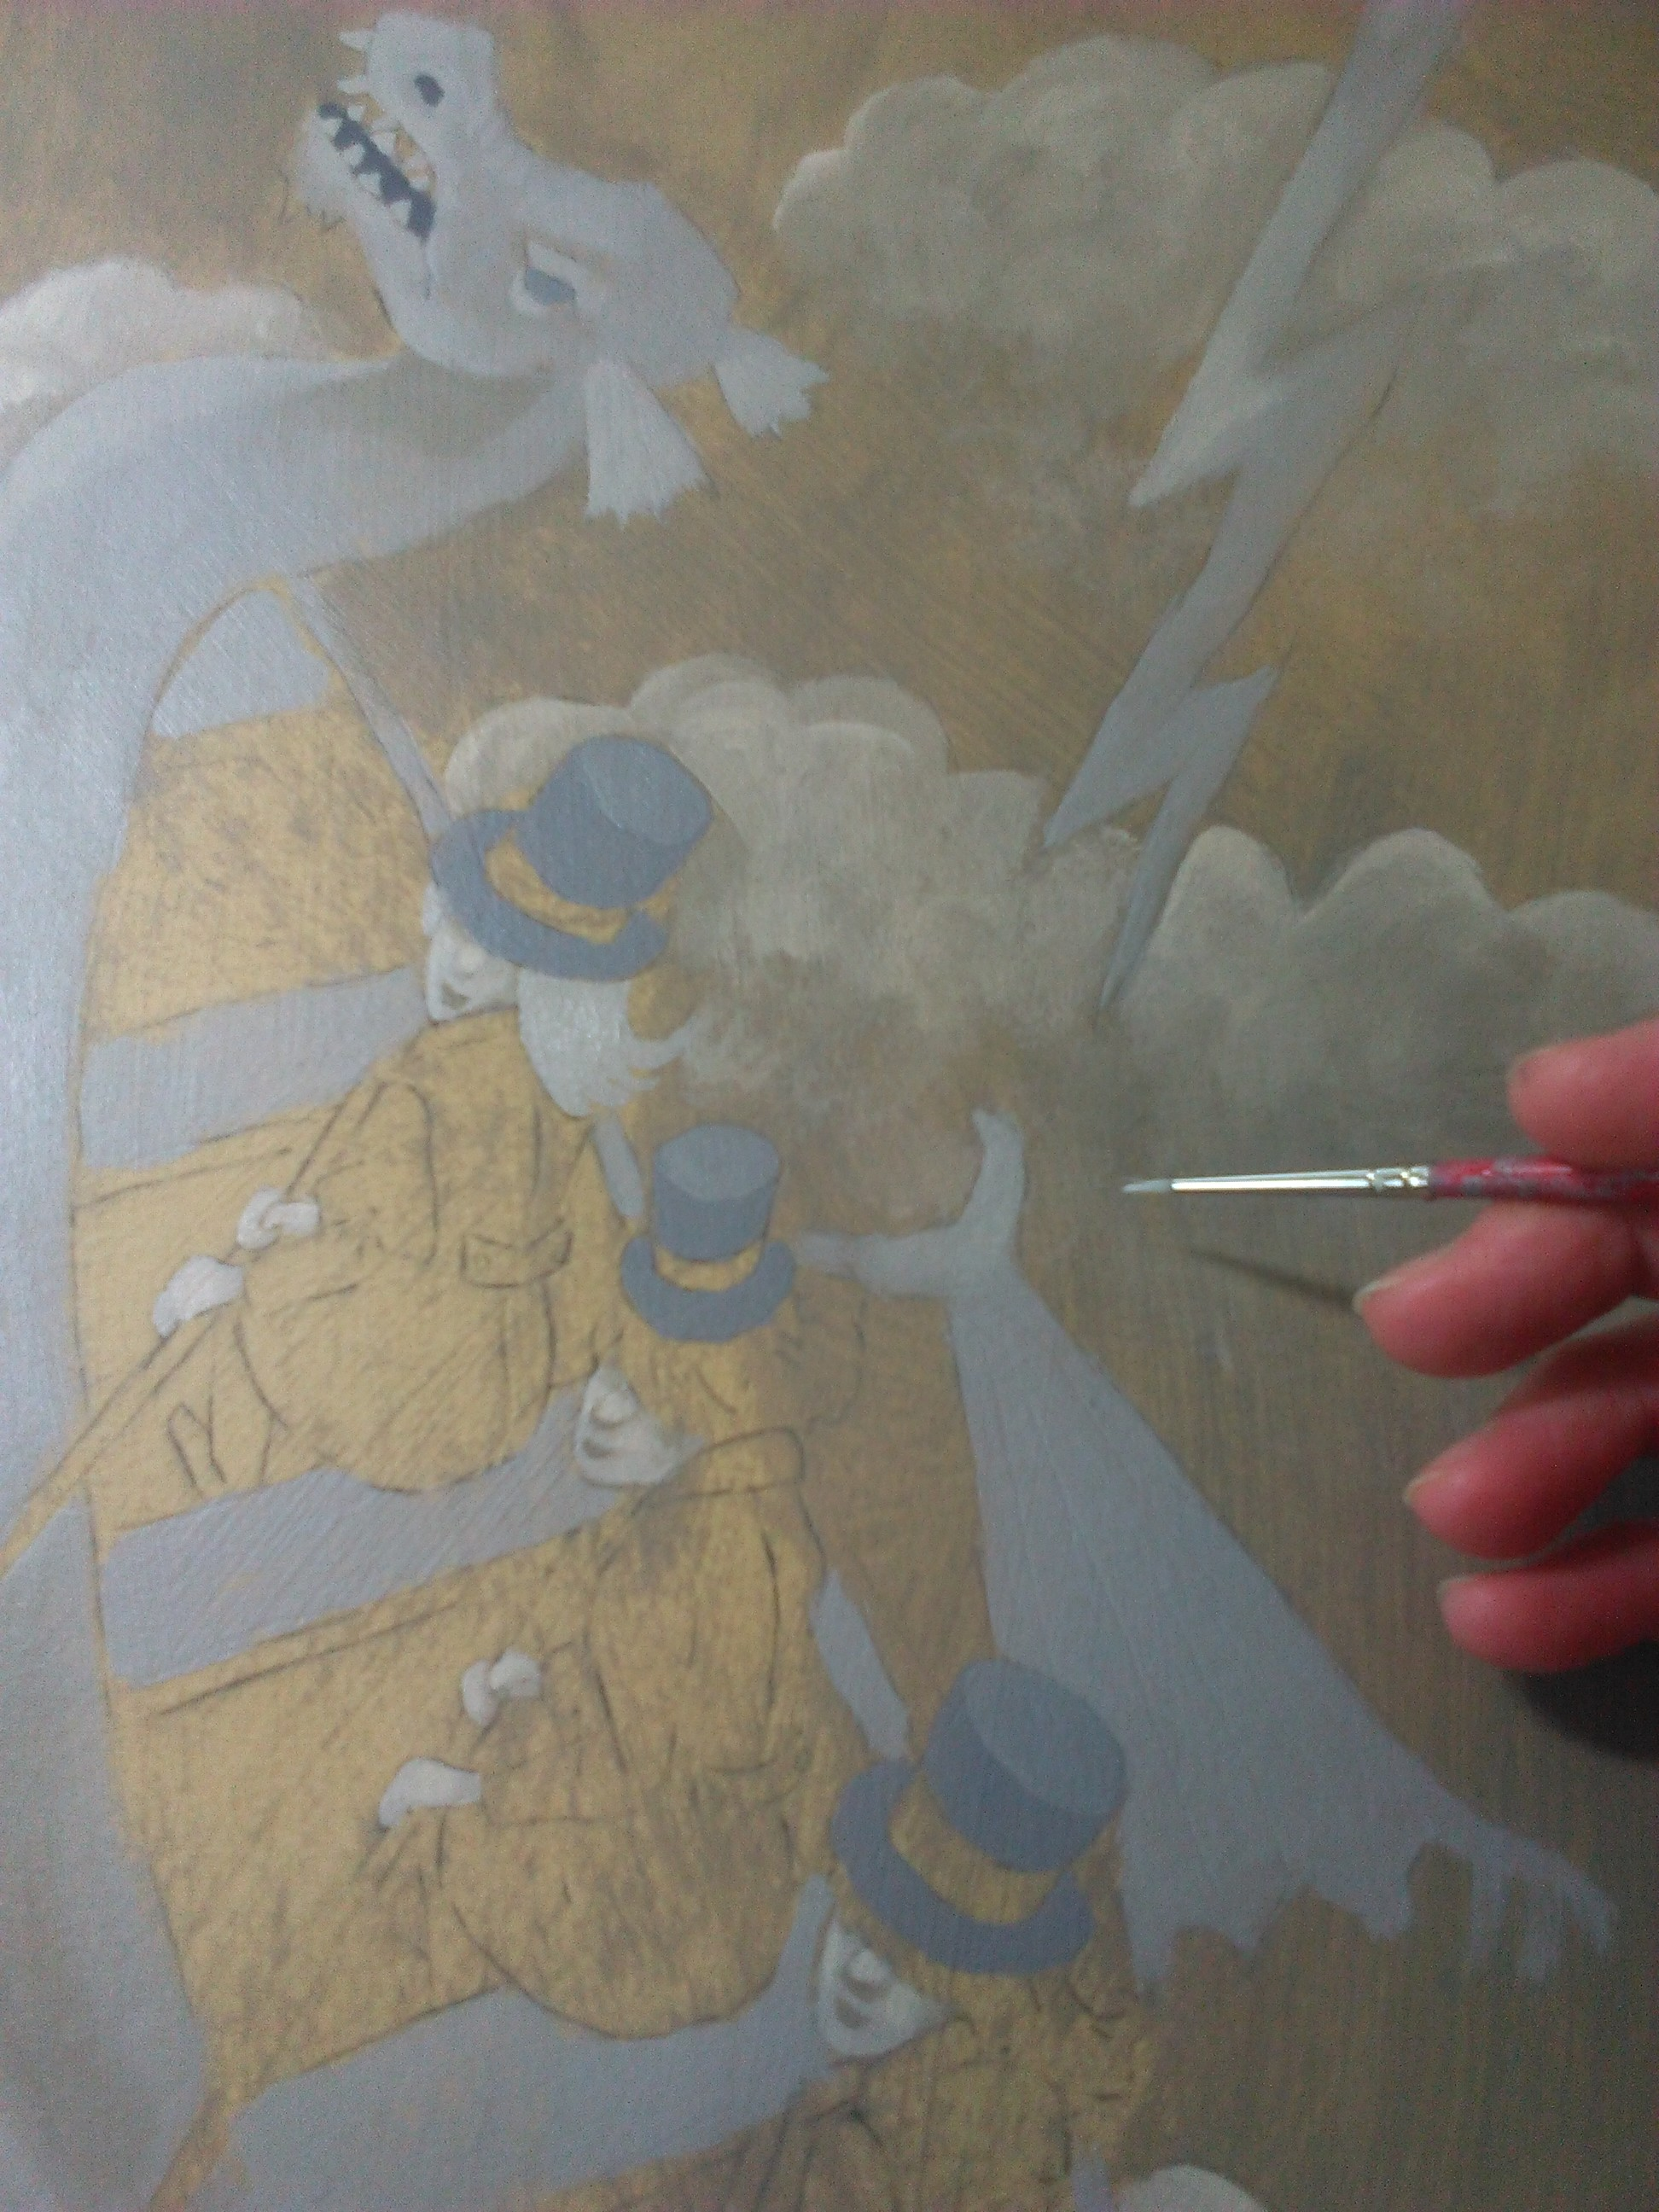 Starting the dragon painting.